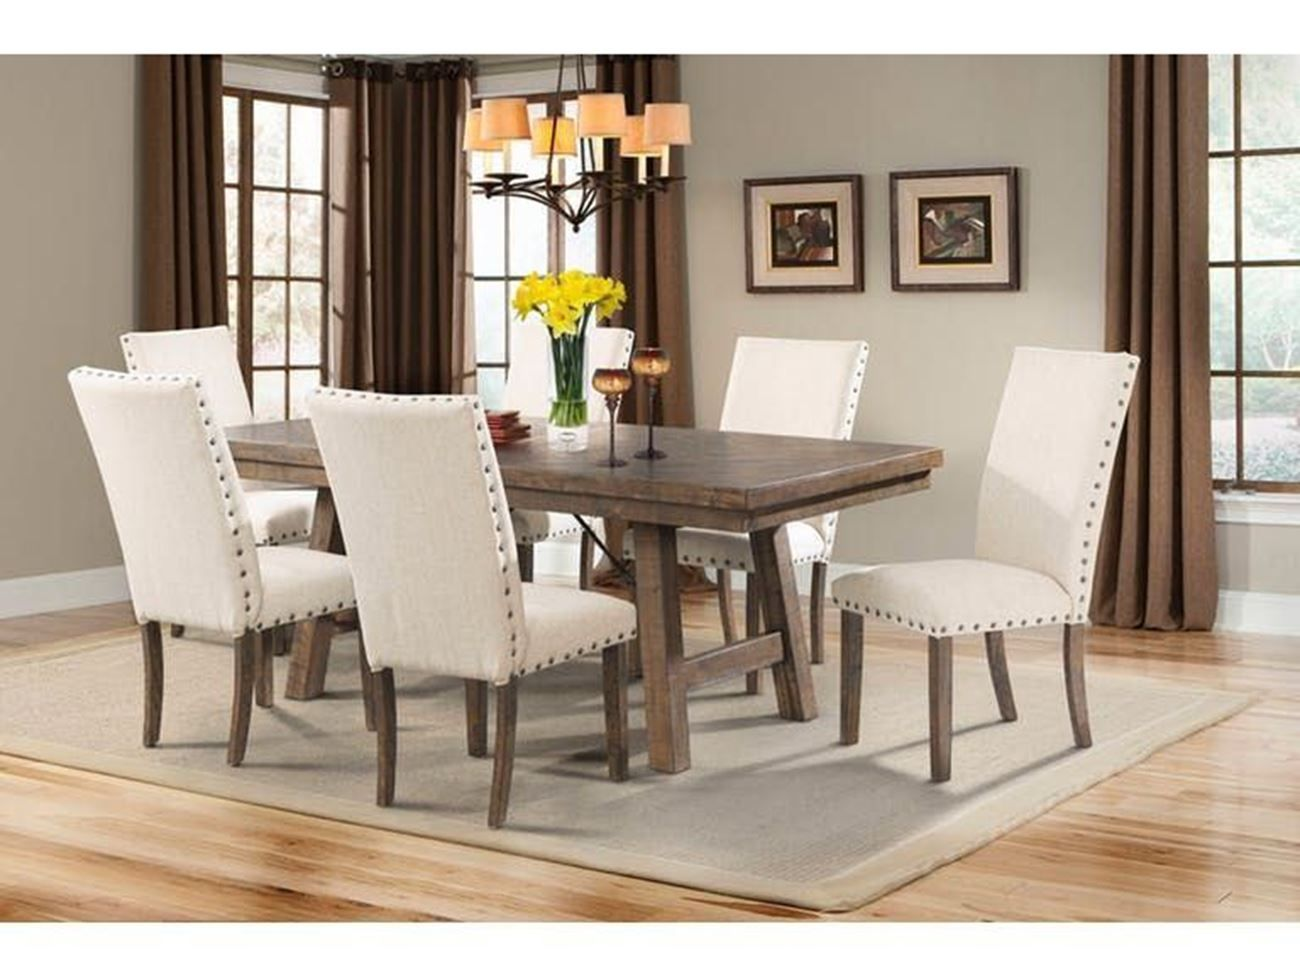 Jax Dining Table 4 Upholstered Side Chairs Dining Table